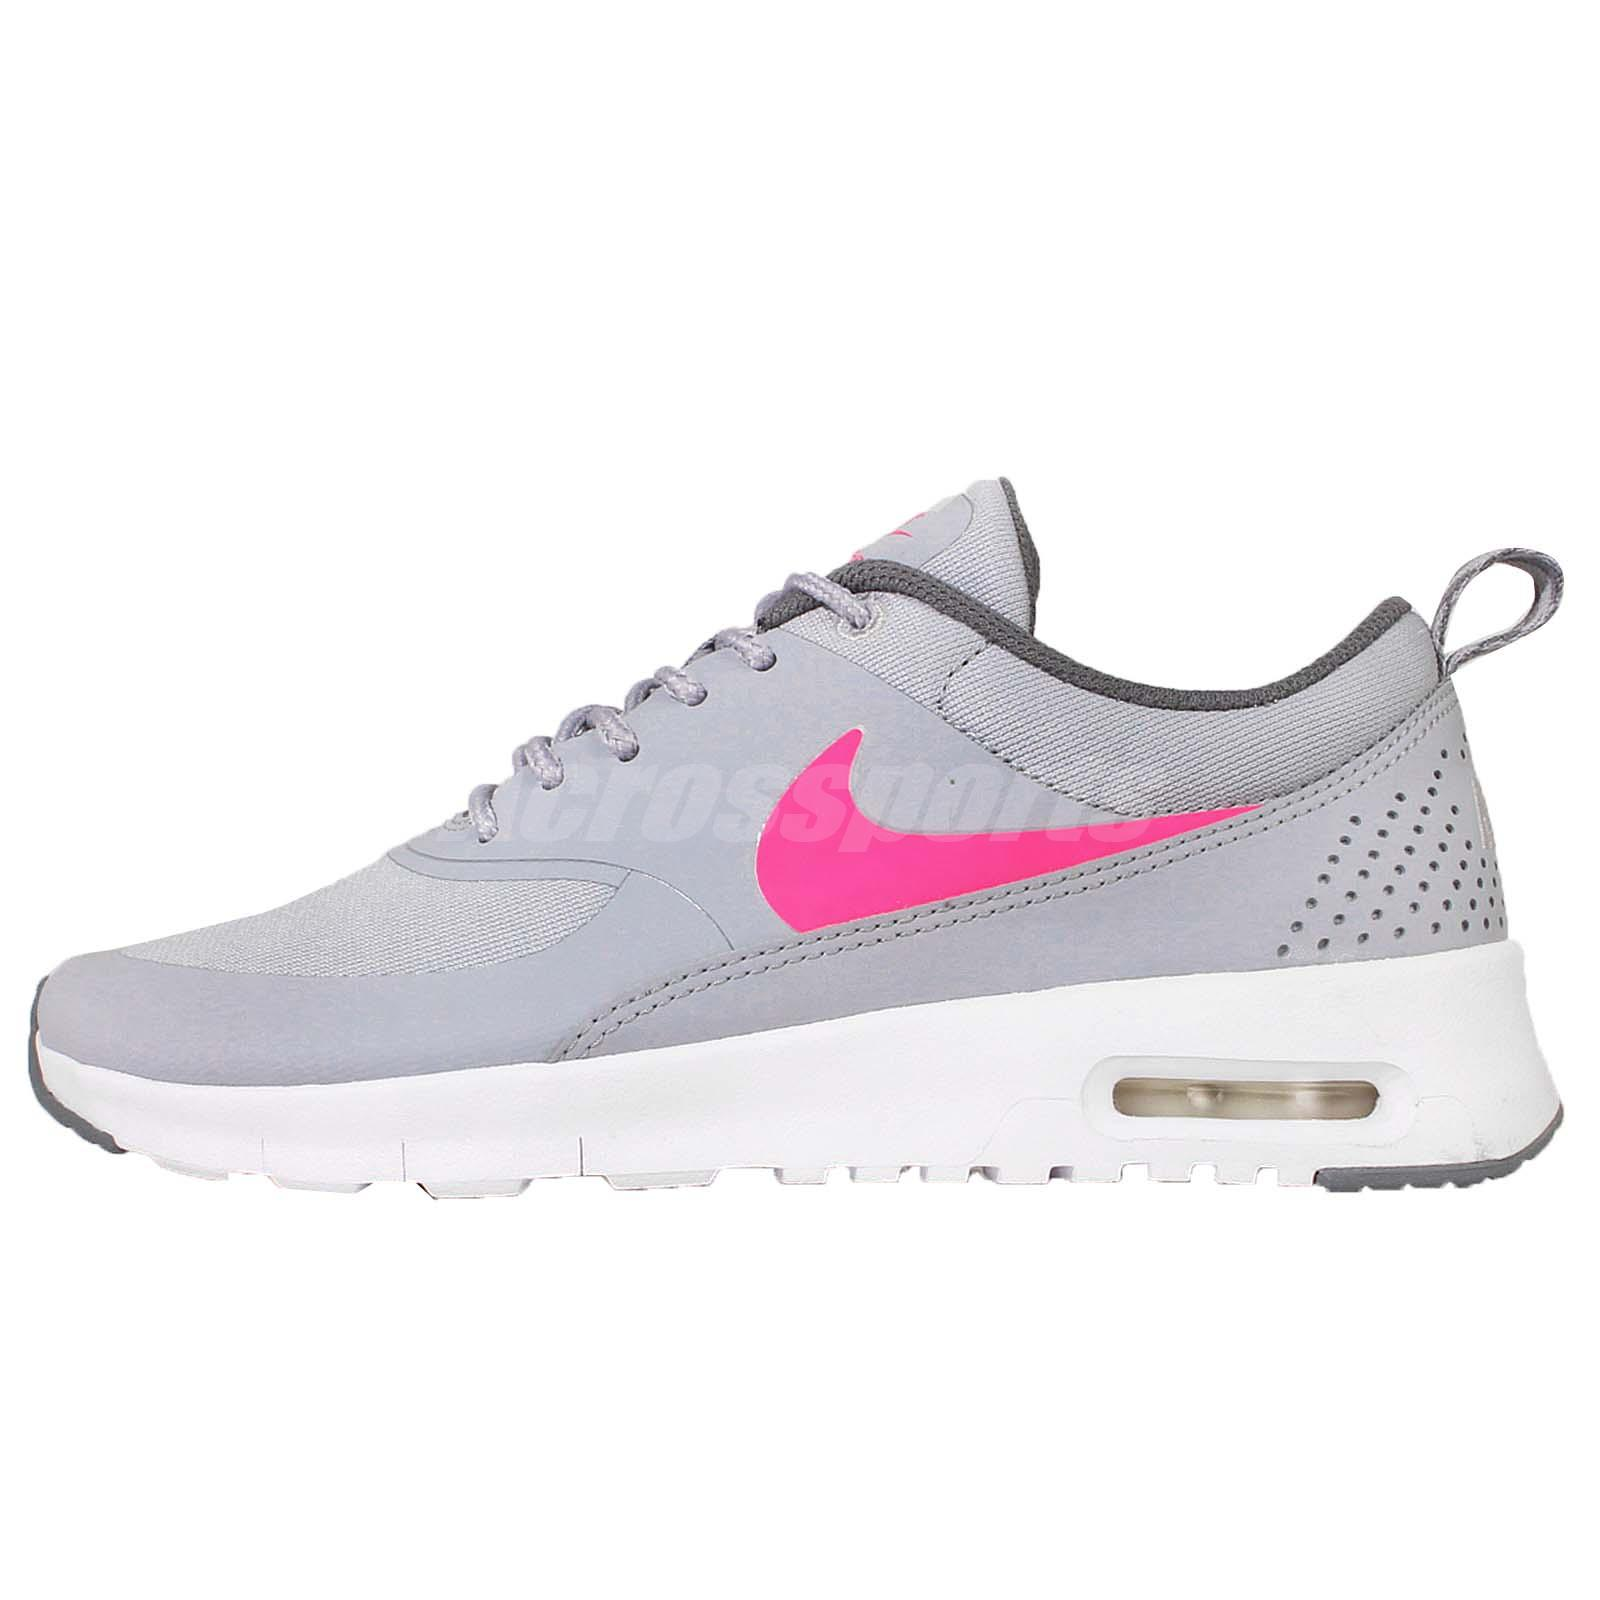 a409a79bb6 ... Nike Air Max Thea GS Grey Pink Kids Womens Running Shoes Sneakers  814444-002 ...